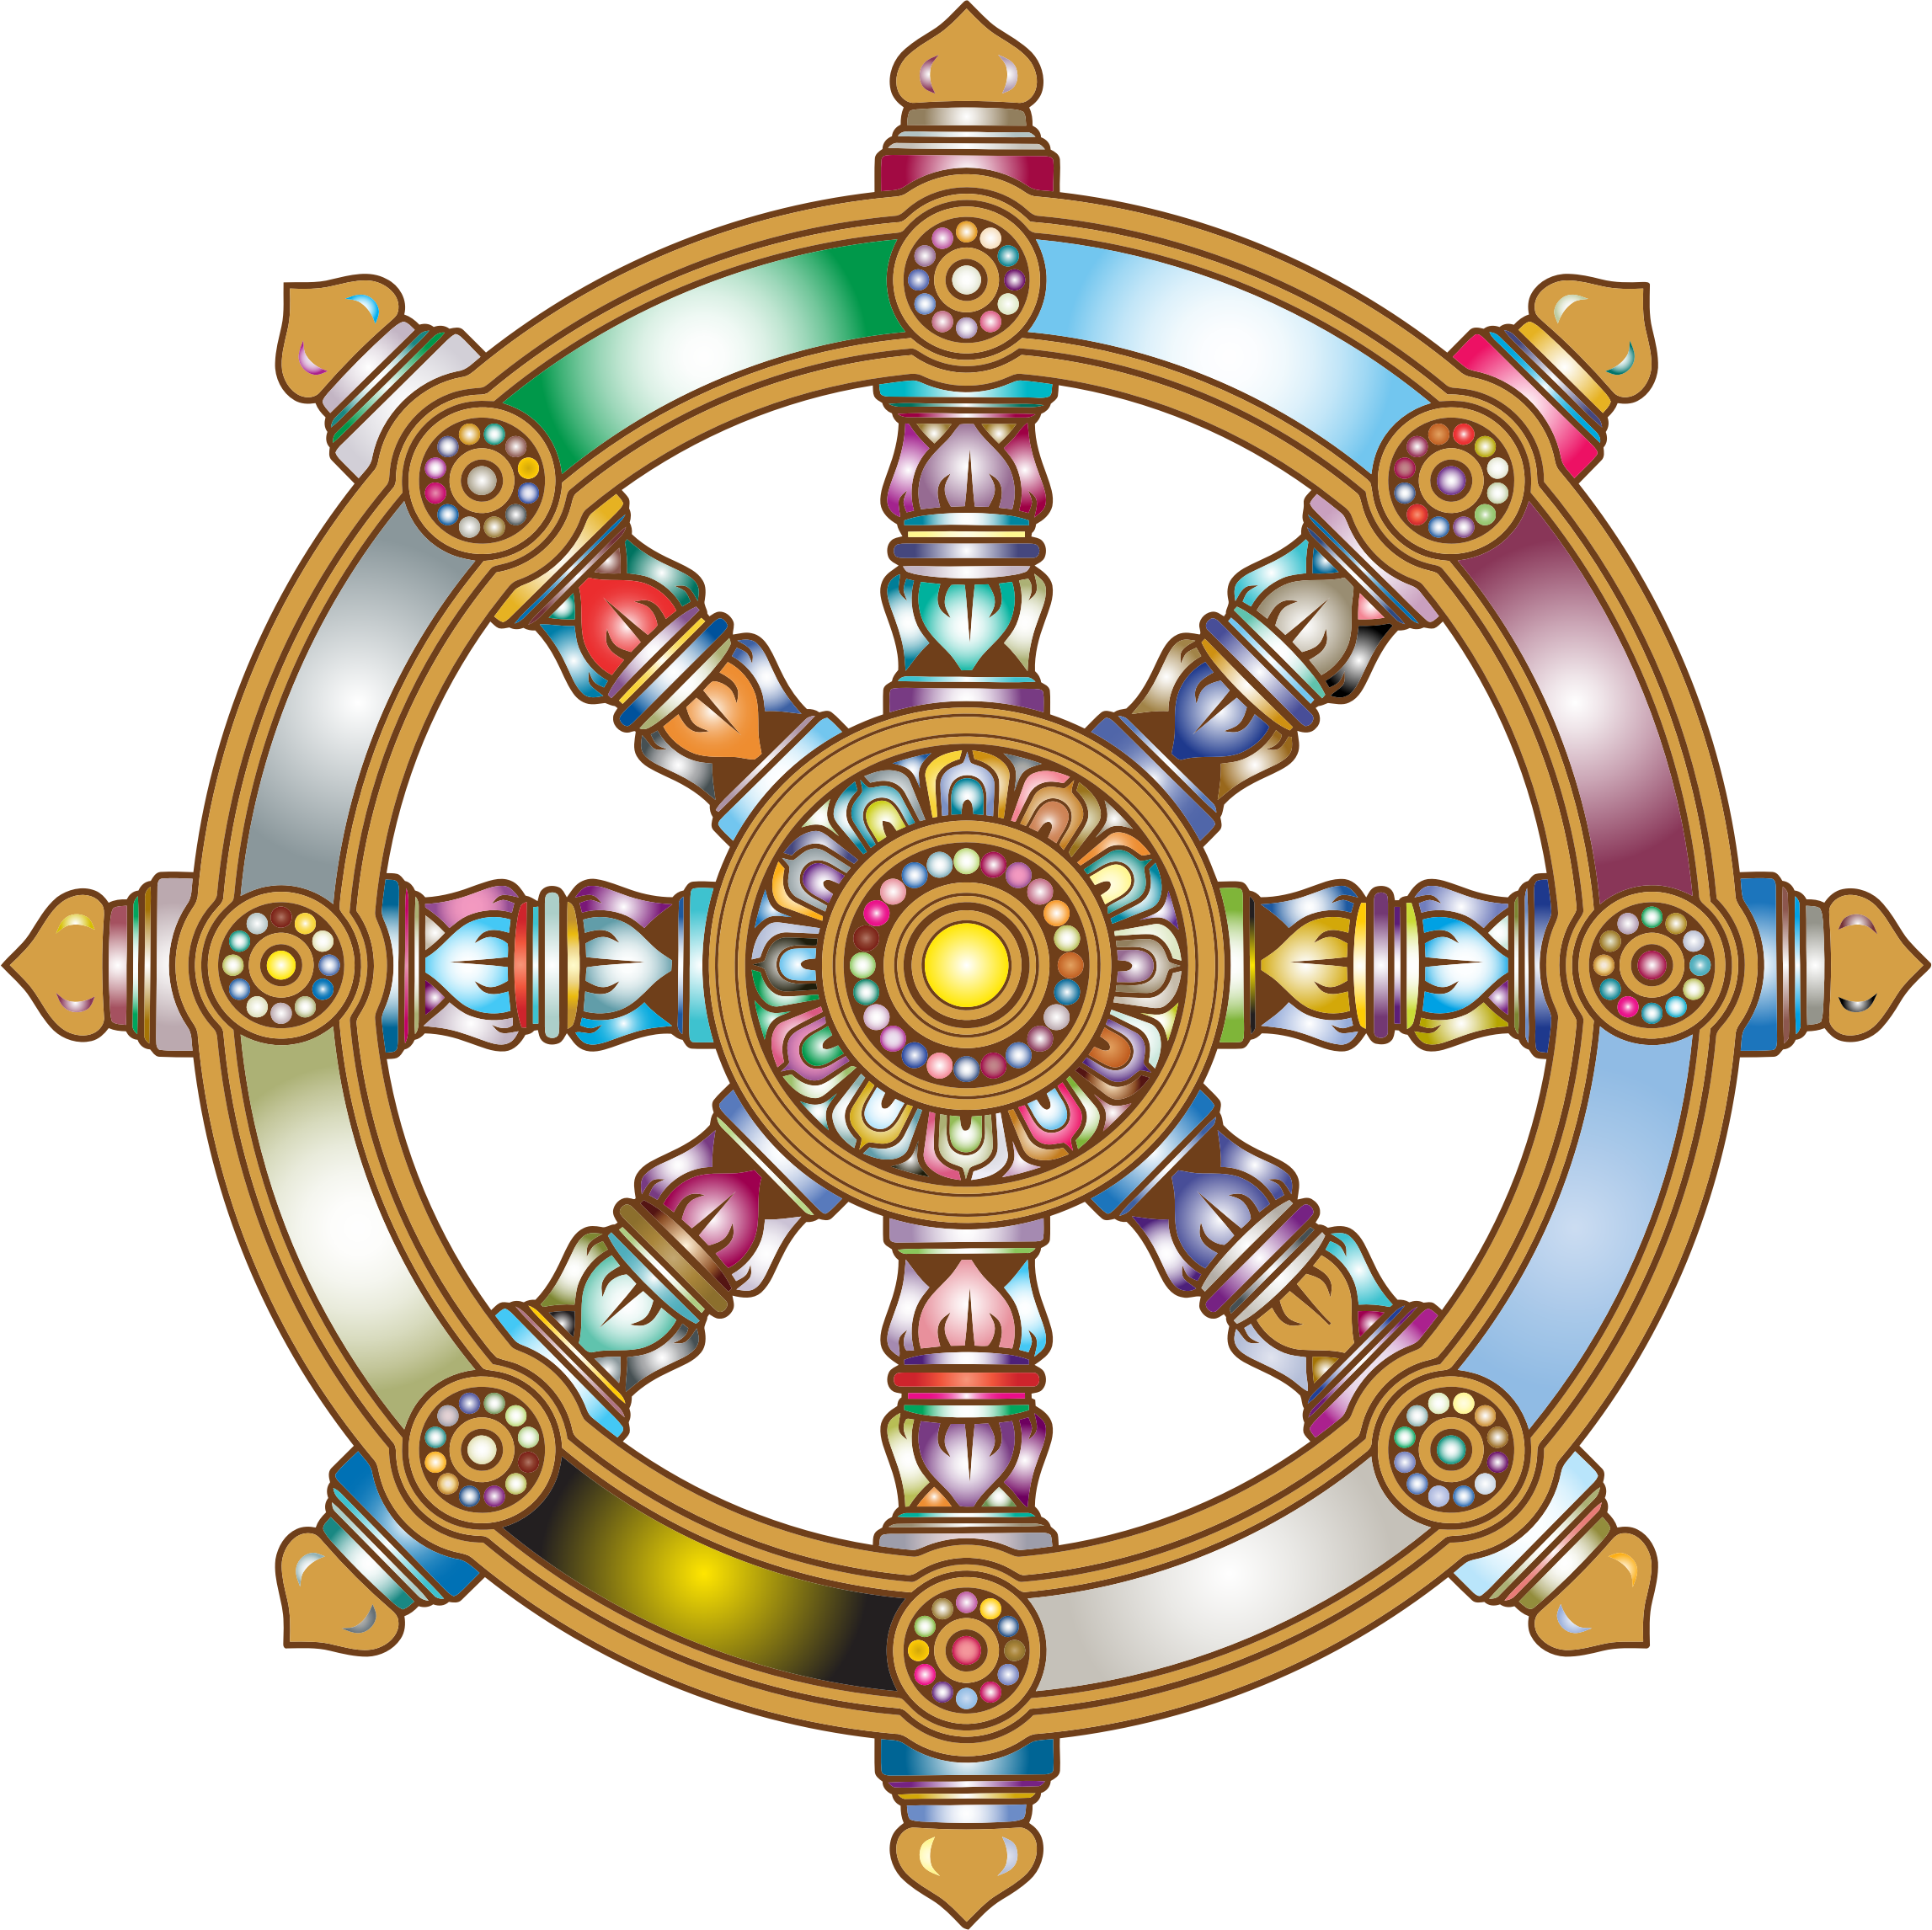 Clipart - Prismatic Ornate Dharma Wheel 3